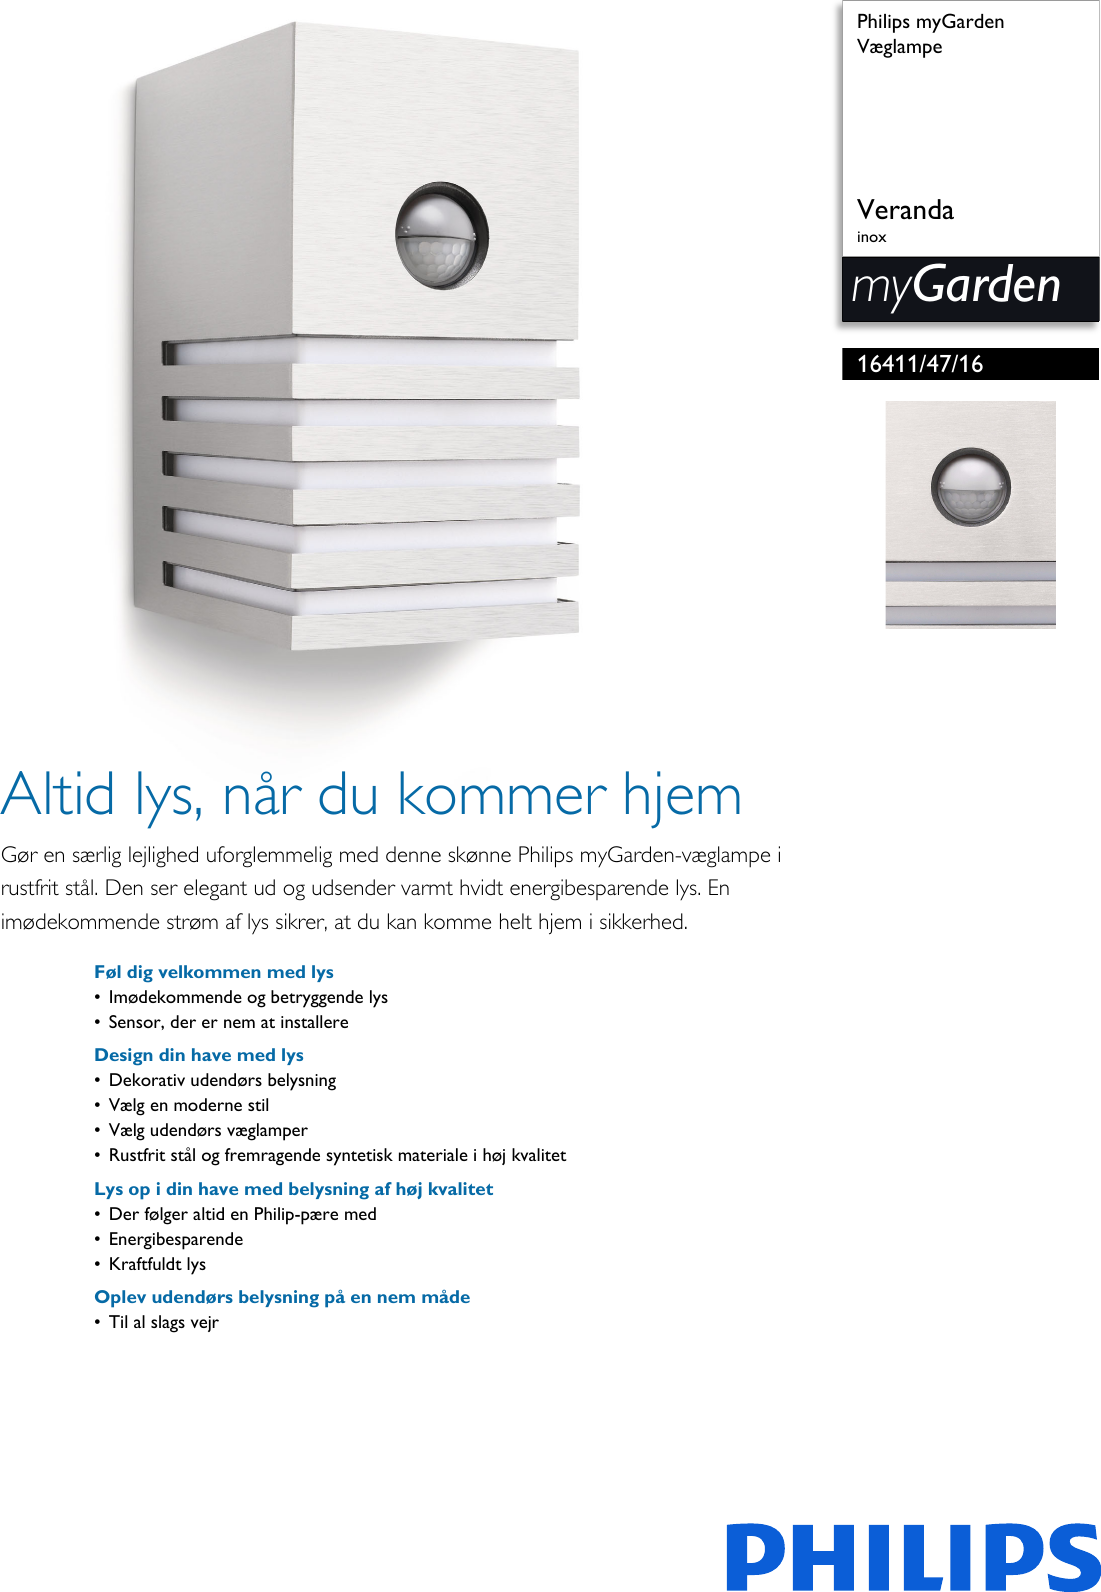 philips pære guide